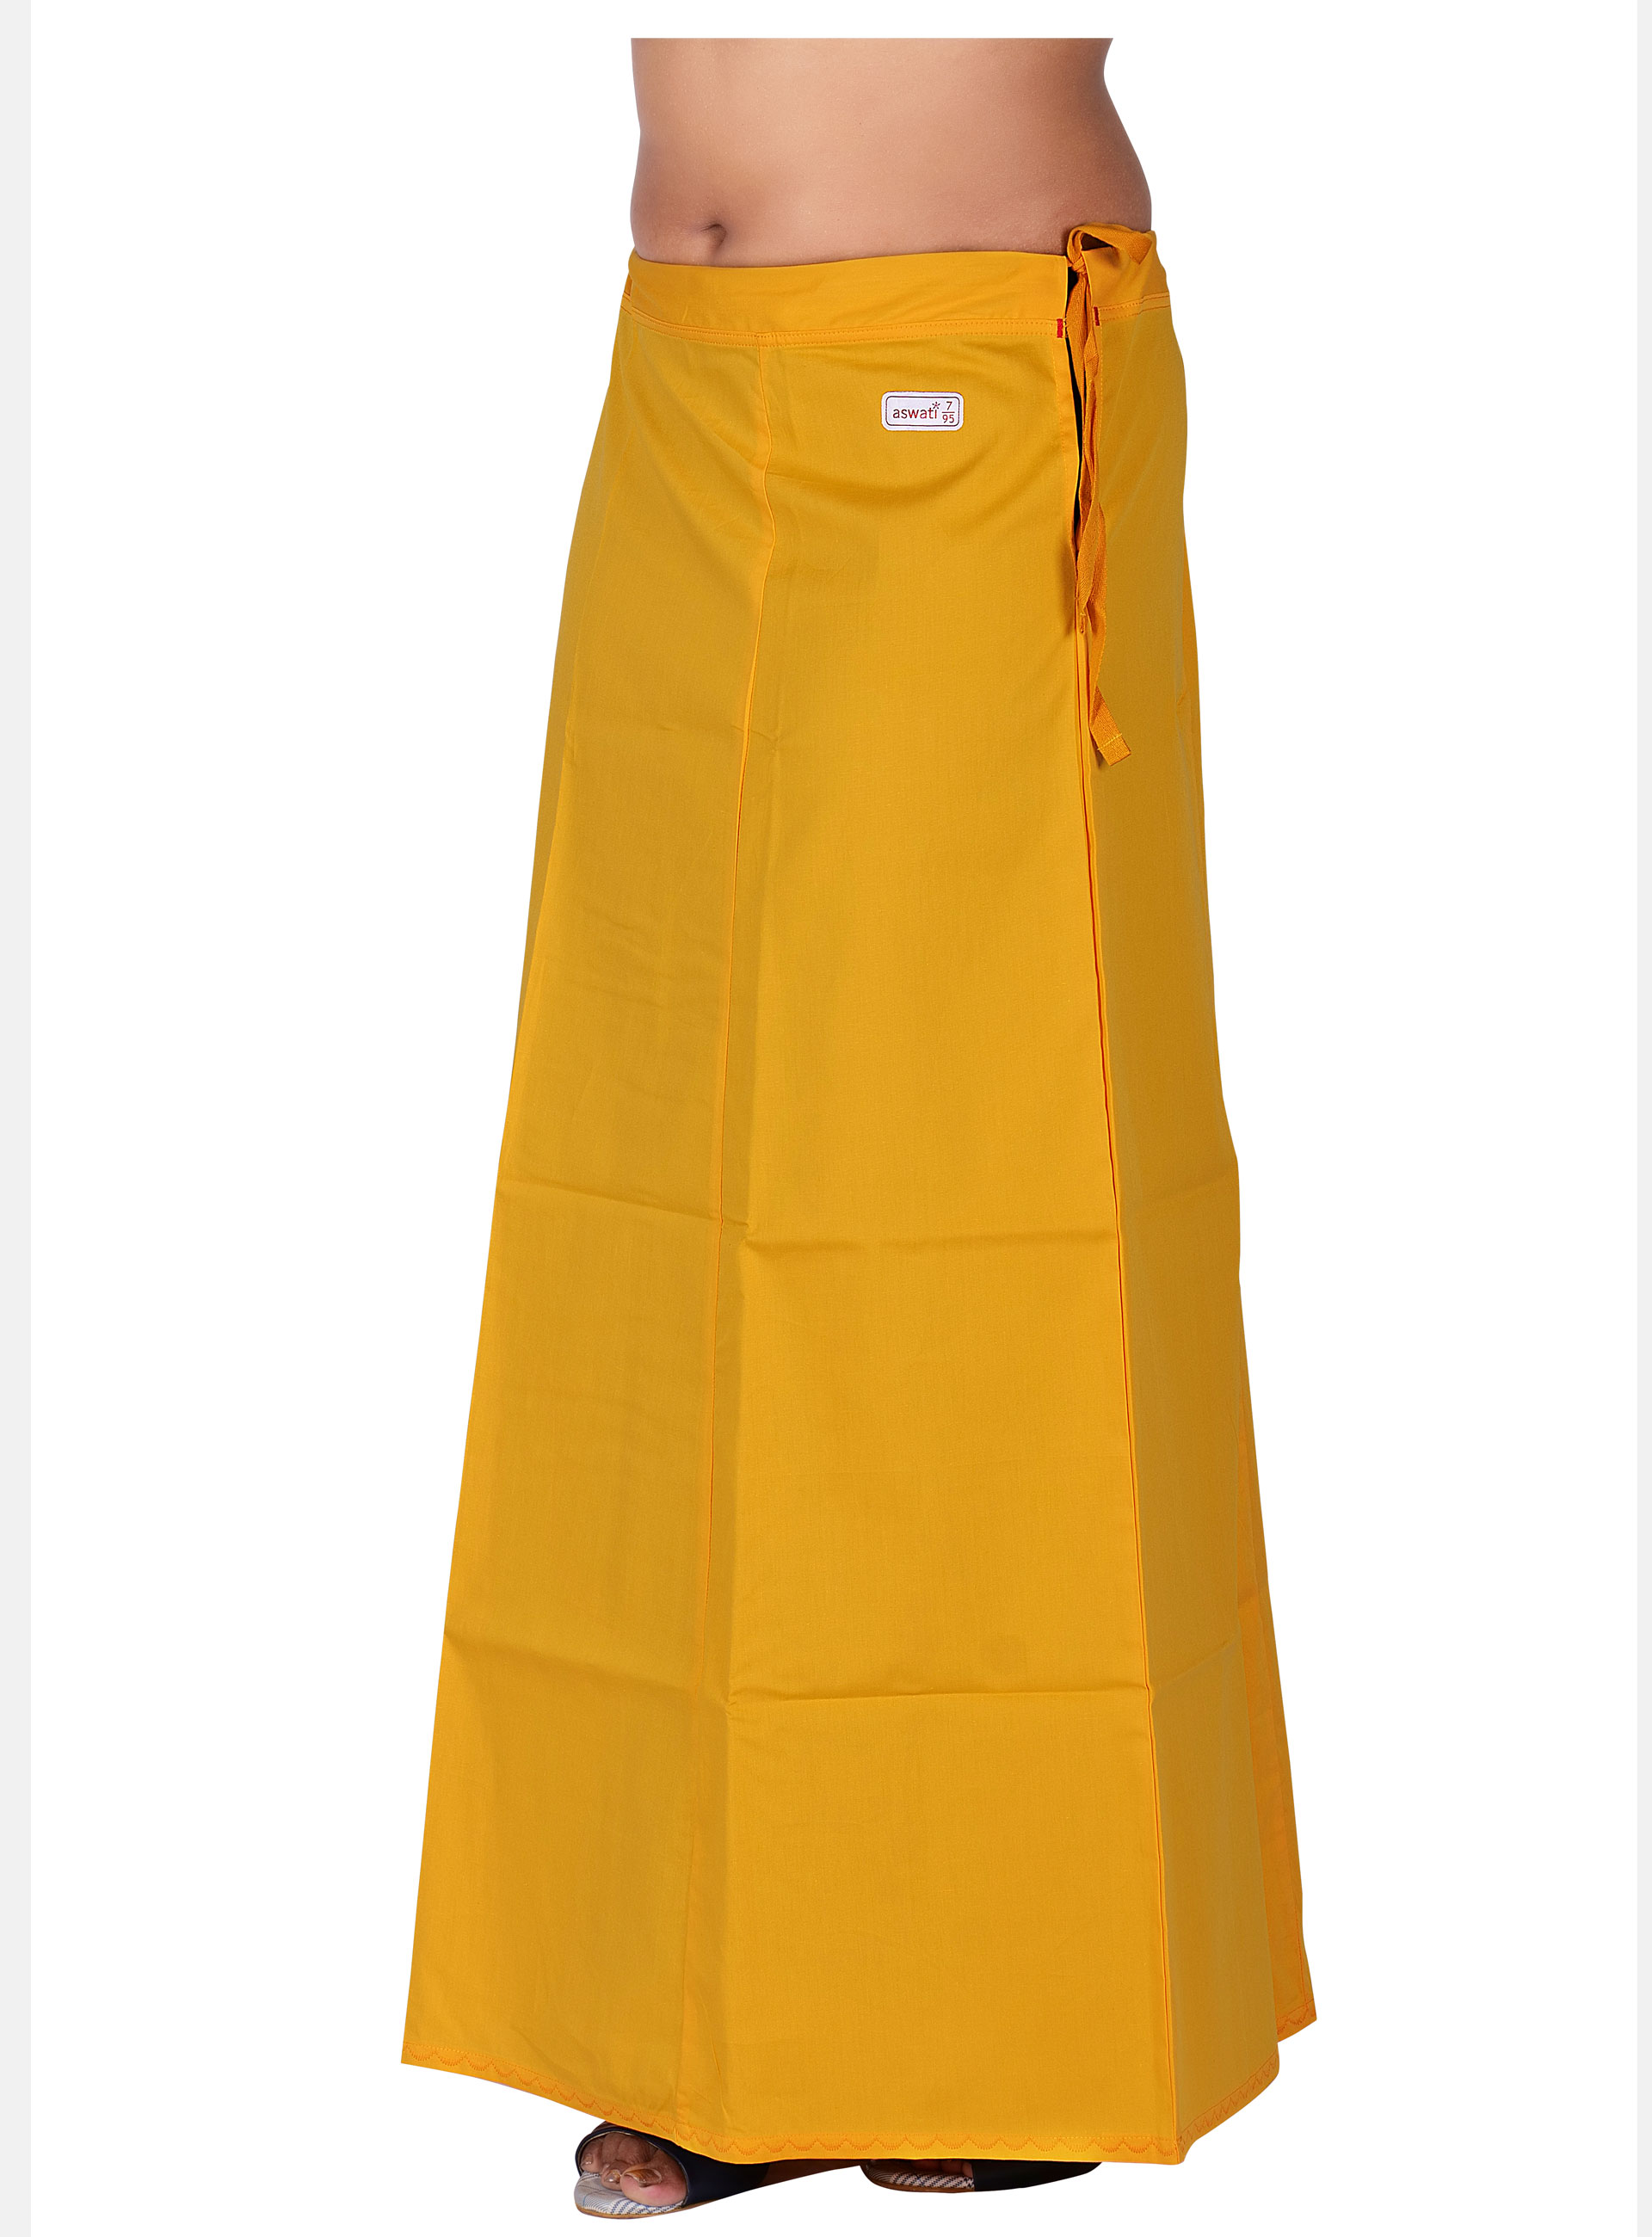 Yellow Color Aswati Premium Inskirts (6 PART)